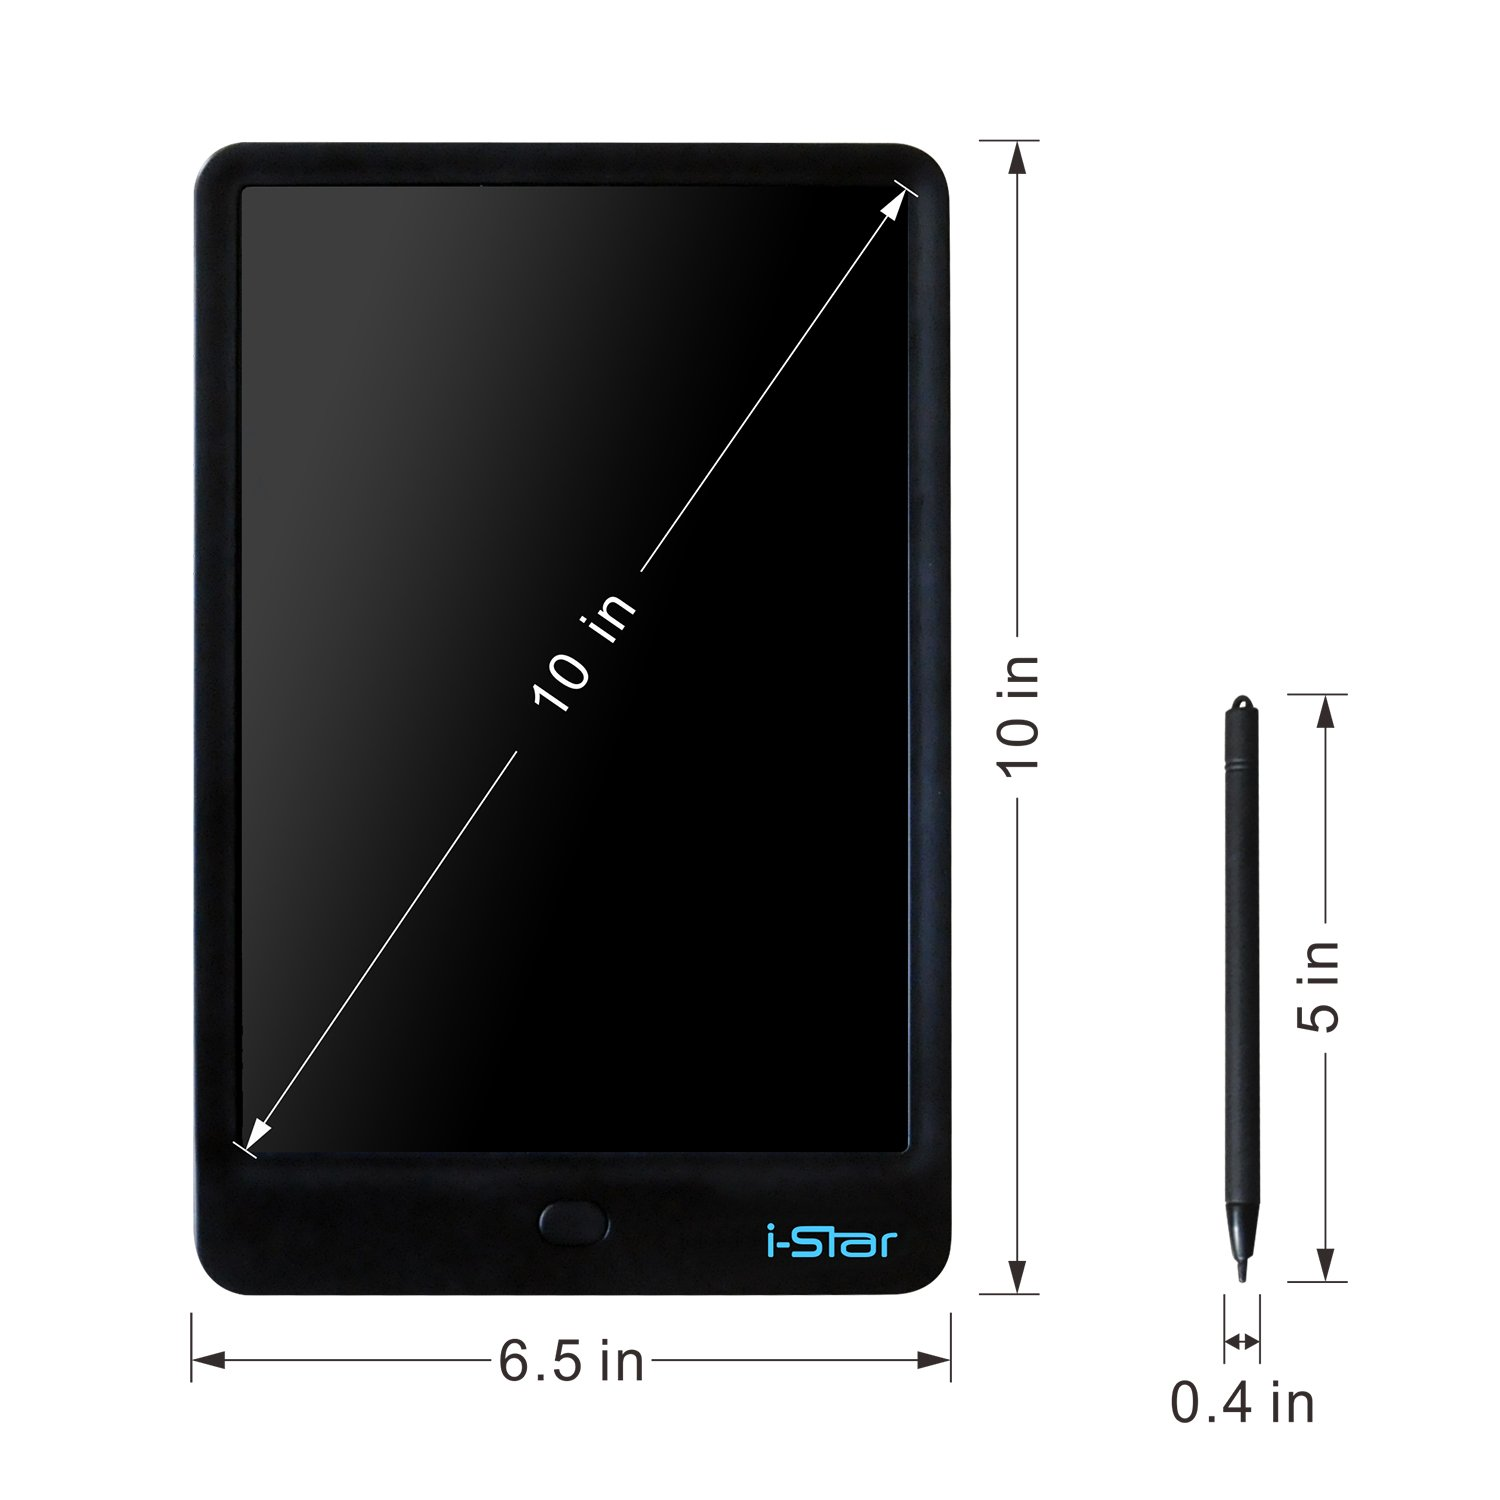 LCD Writing Tablet, i-Star 10 inches Lock Electronic Drawing Painting Board, Paper-Free, Portable Doodle Handwriting Notepad Gift for Kids Adults Designer Office House, Black by I-STAR (Image #2)